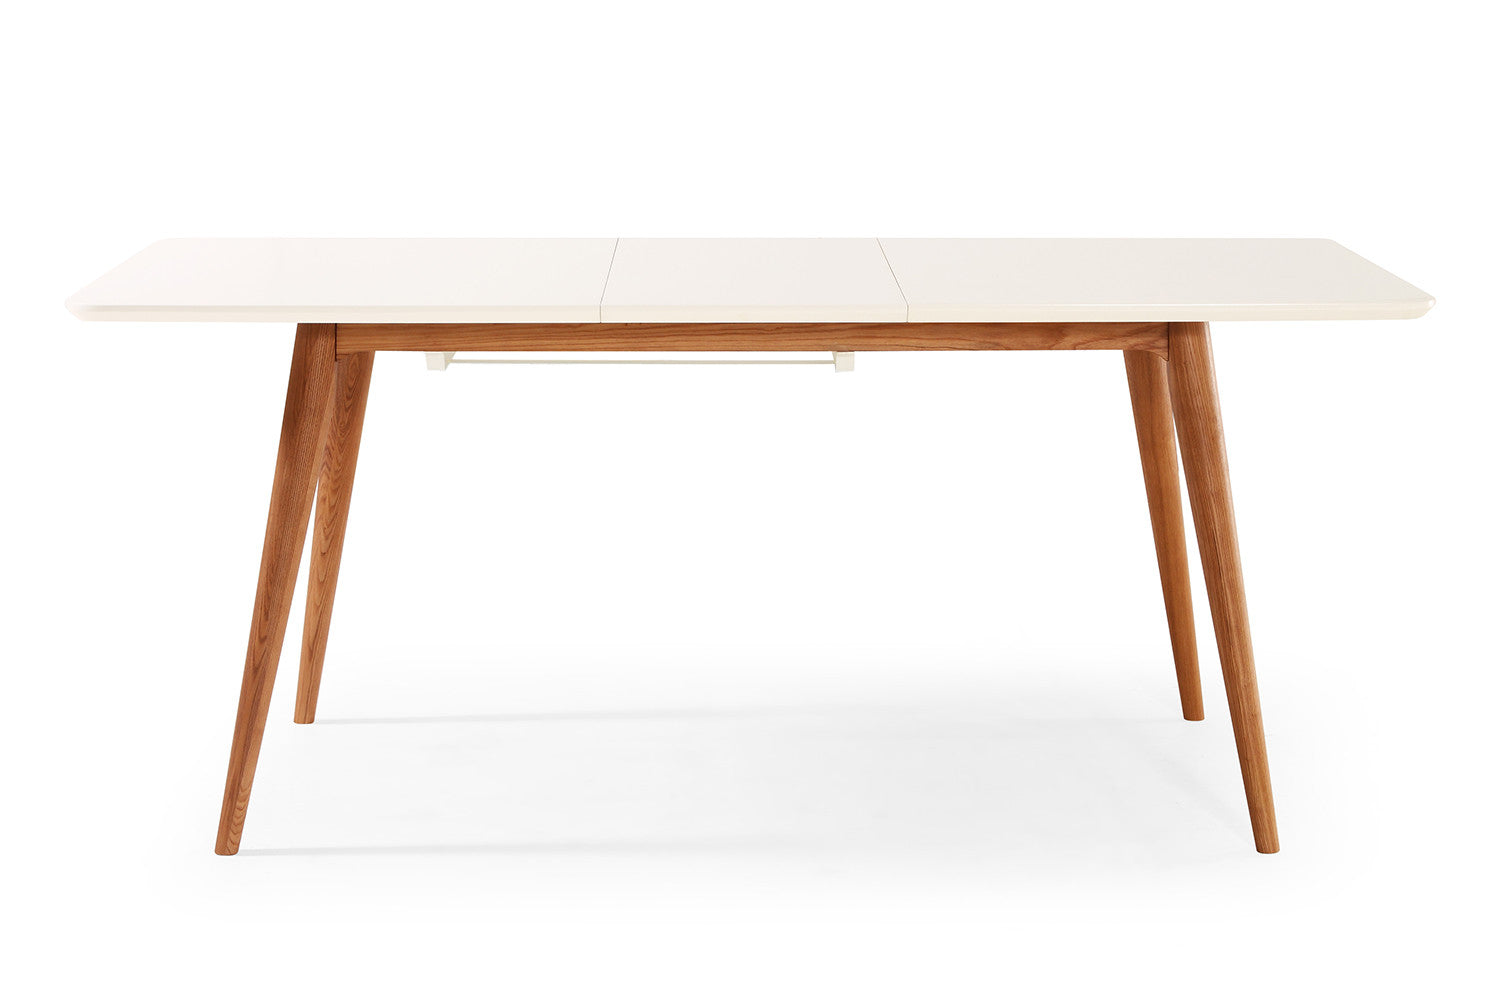 Table de salle manger extensible scandinave wyna dewarens for Table salle manger zeus